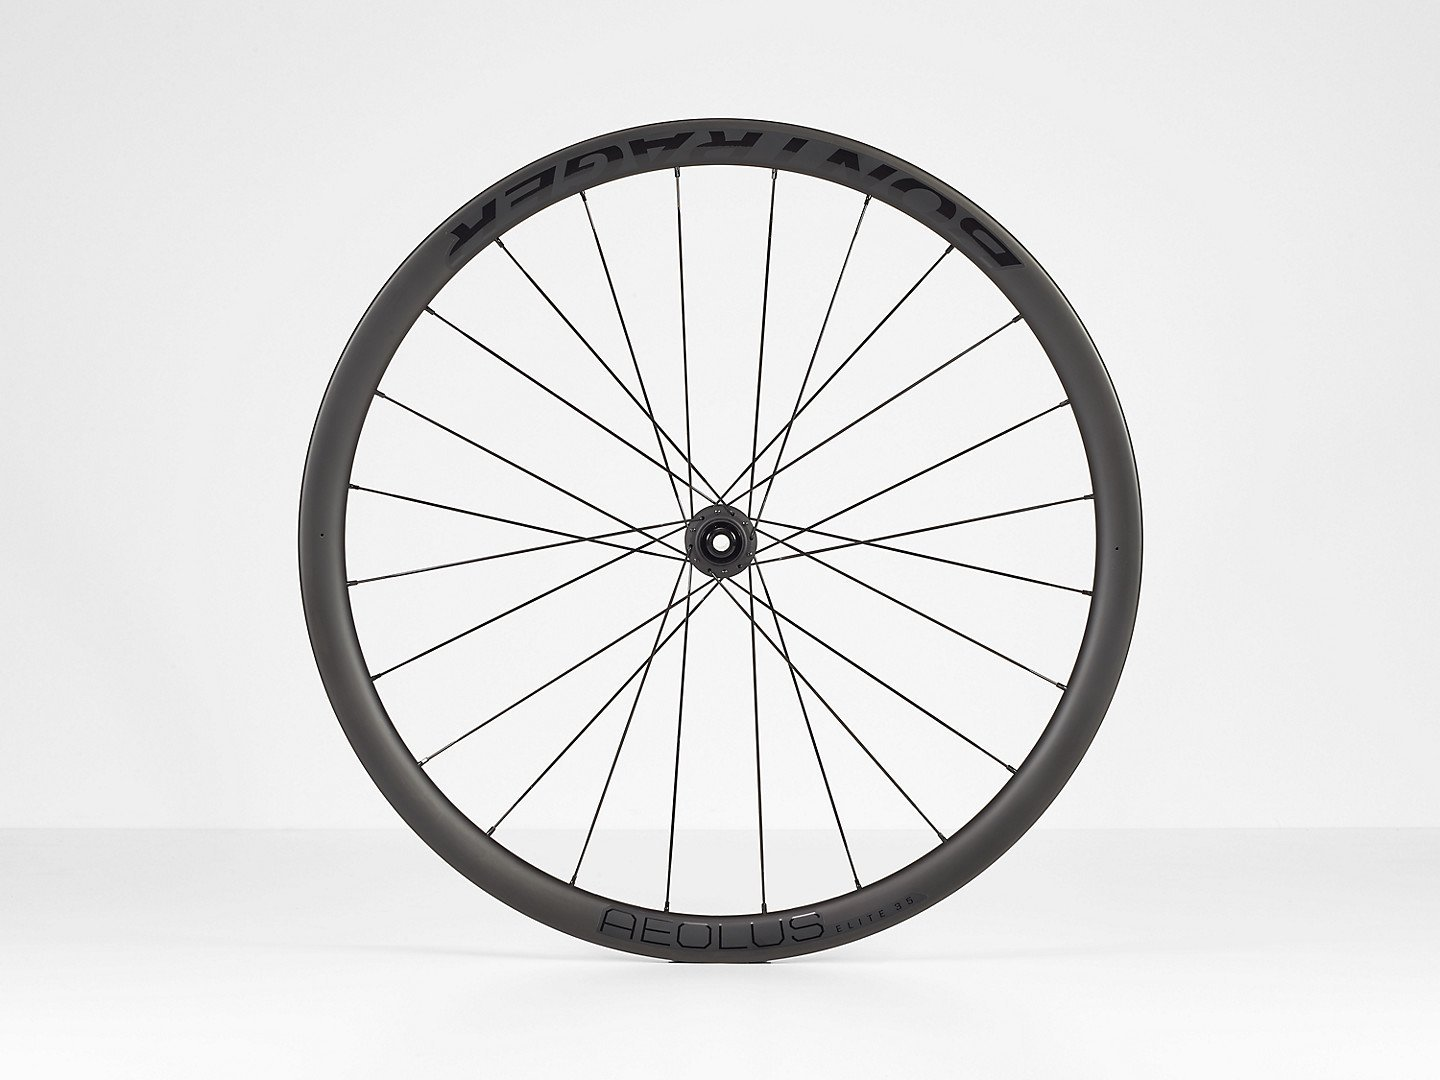 Bontrager Aeolus Elite 35 Disc Wheel - Cycles Galleria Melbourne